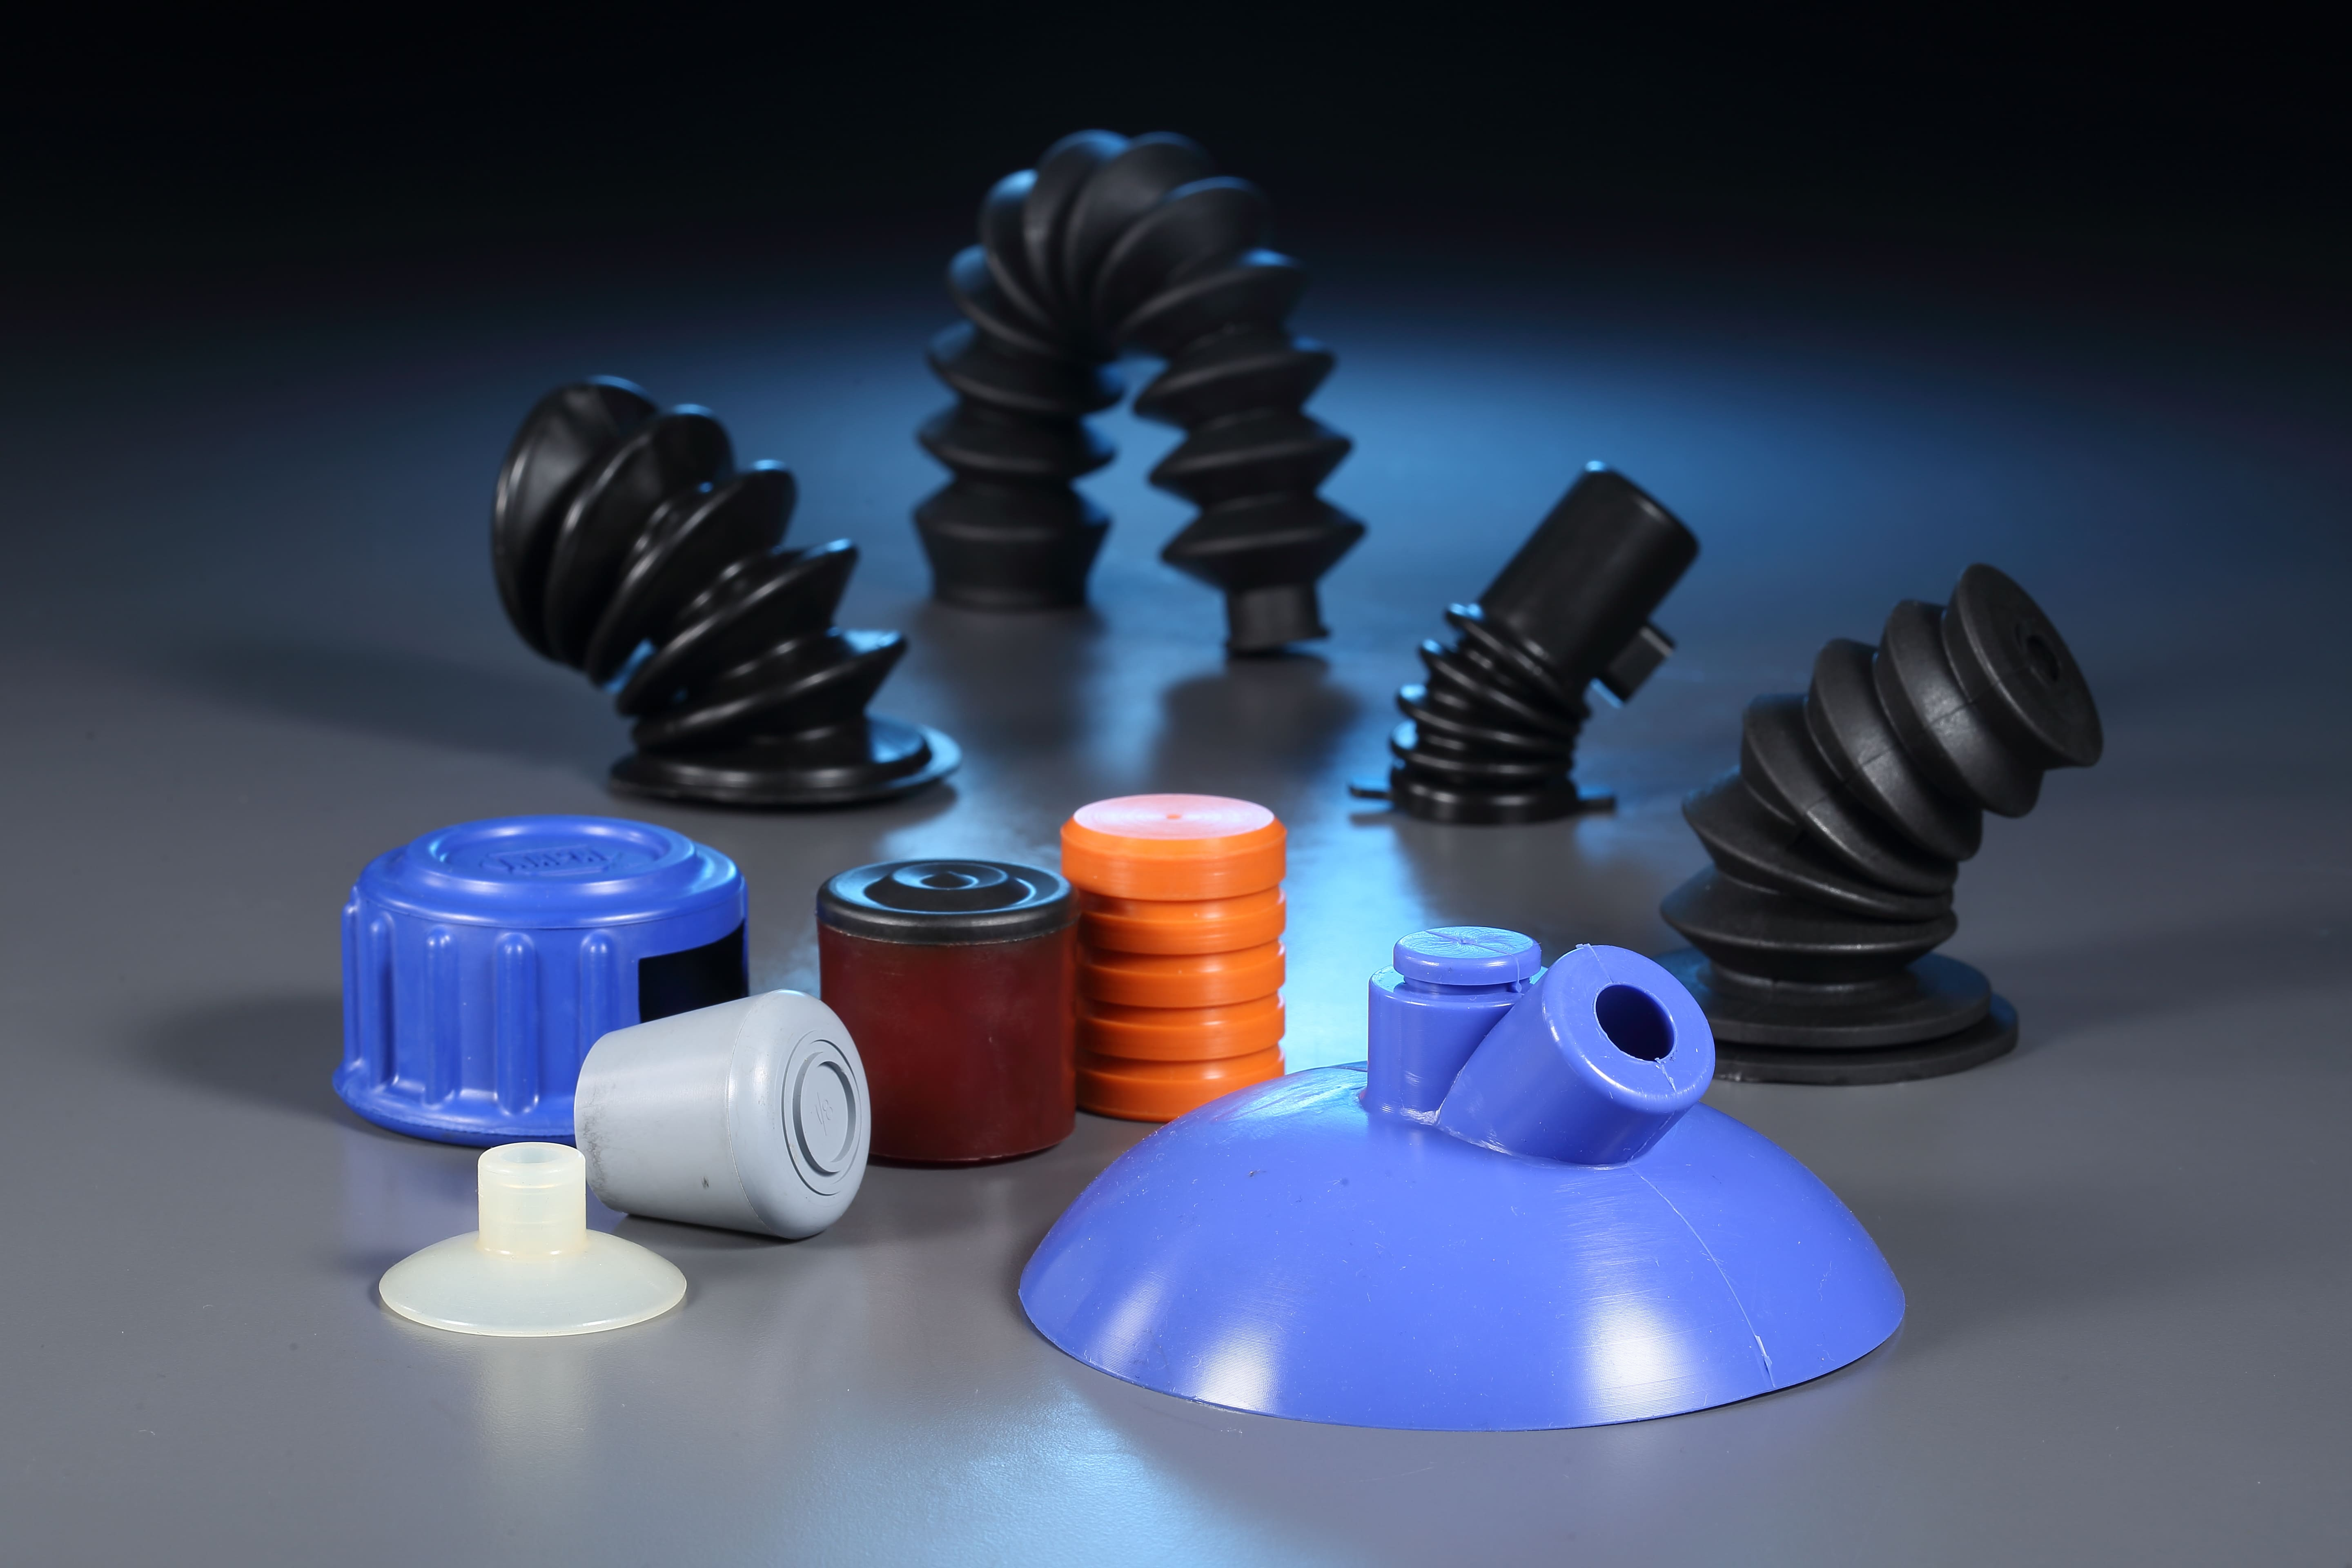 Automobile Rubber Boot Series for Car for Rubber, Plastic Parts made by Yee Ming Ying Co., LTD. 昱銘穎有限公司 - MatchSupplier.com